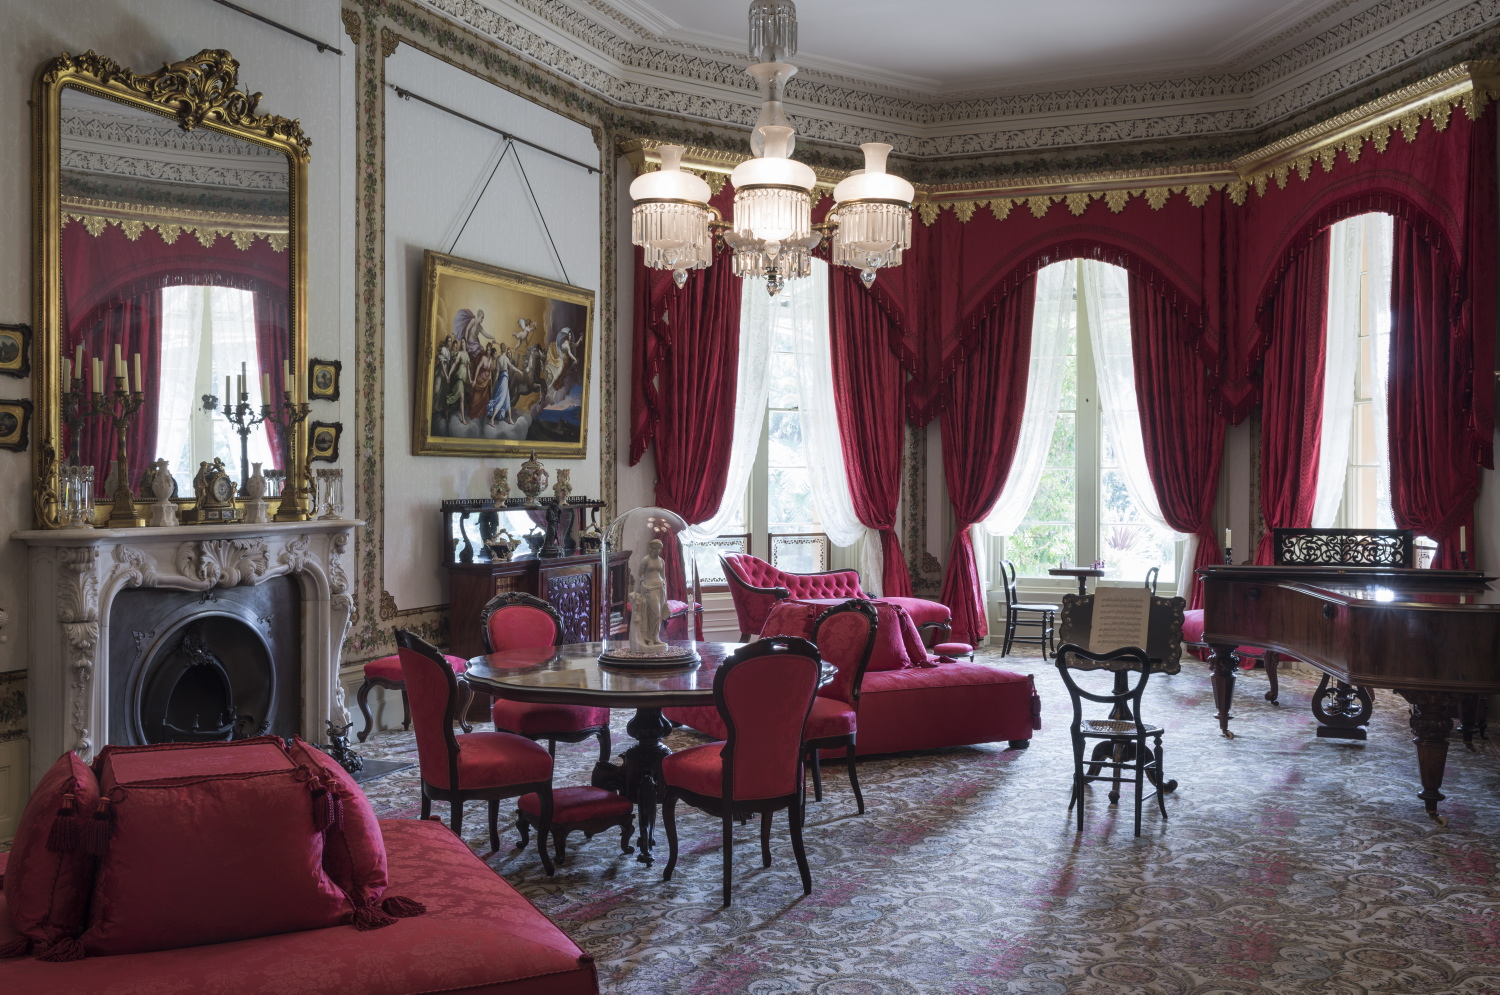 Newly refurbished drawing room, Vaucluse House, 2017.